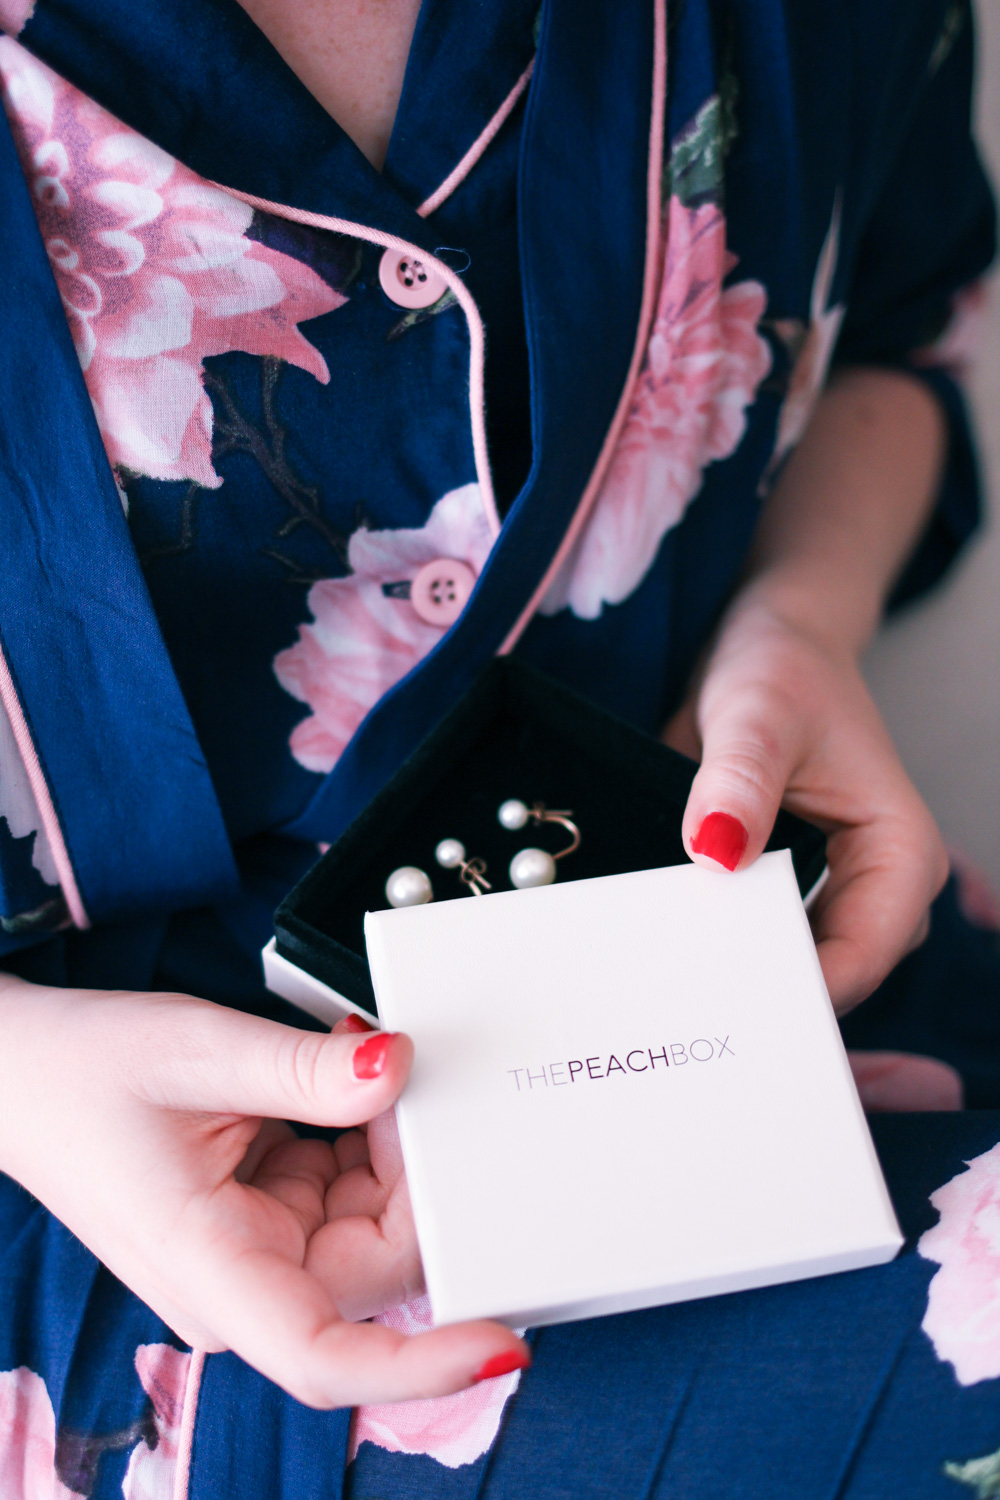 @findingfemme wears The Peach Box pearl earrings and Target floral pyjamas.